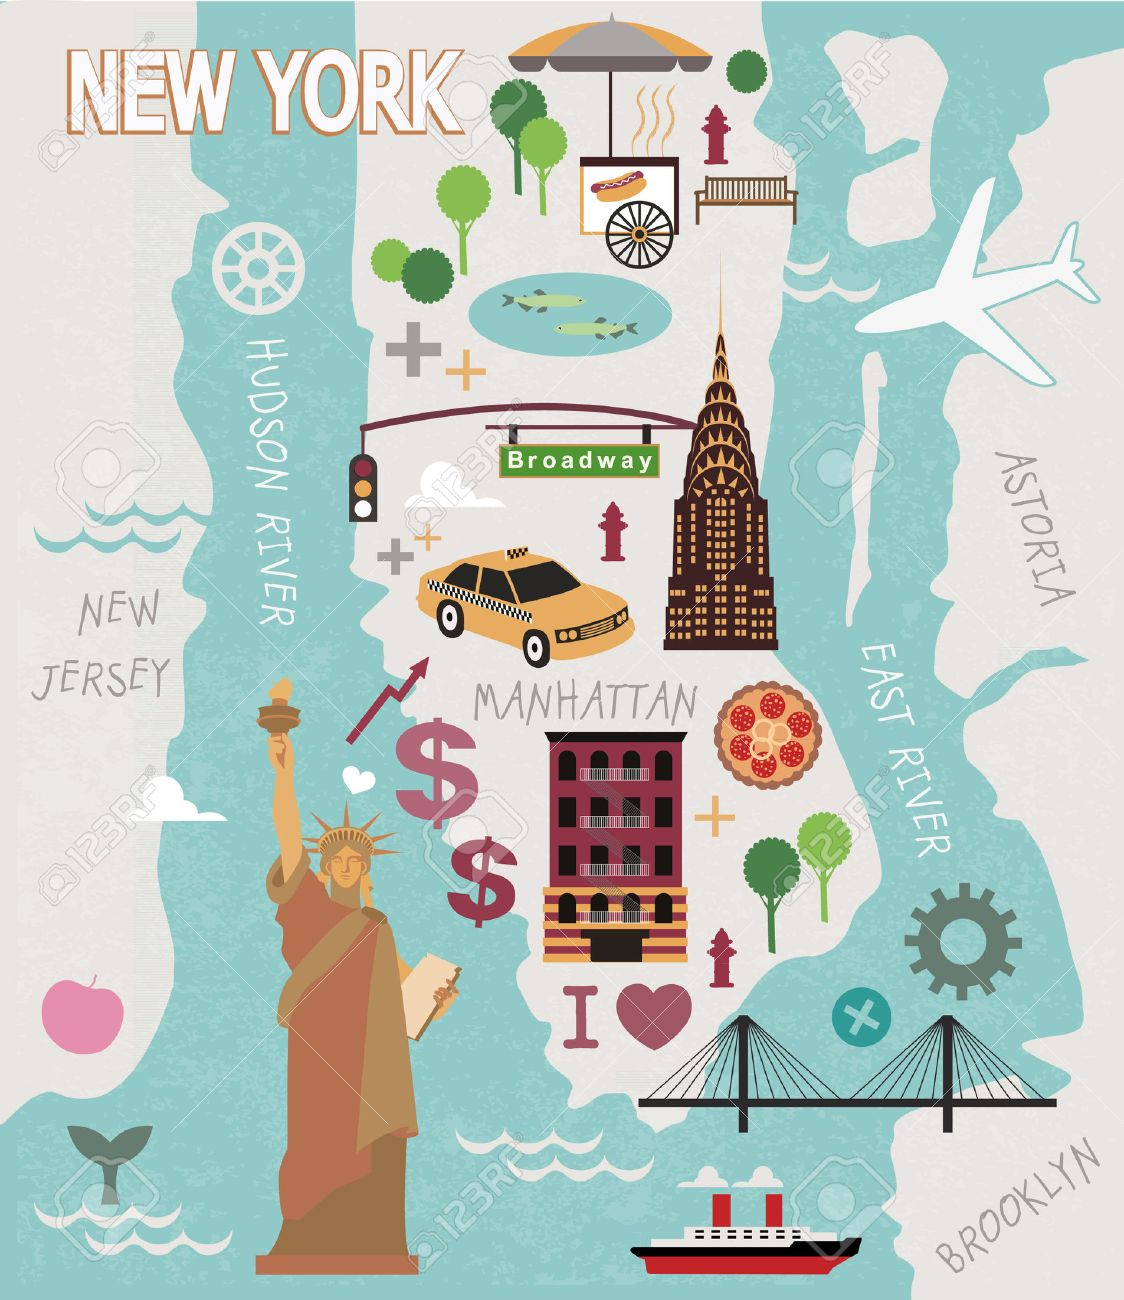 New York Map Stock Vector Illustration And Royalty Free New - New york map city